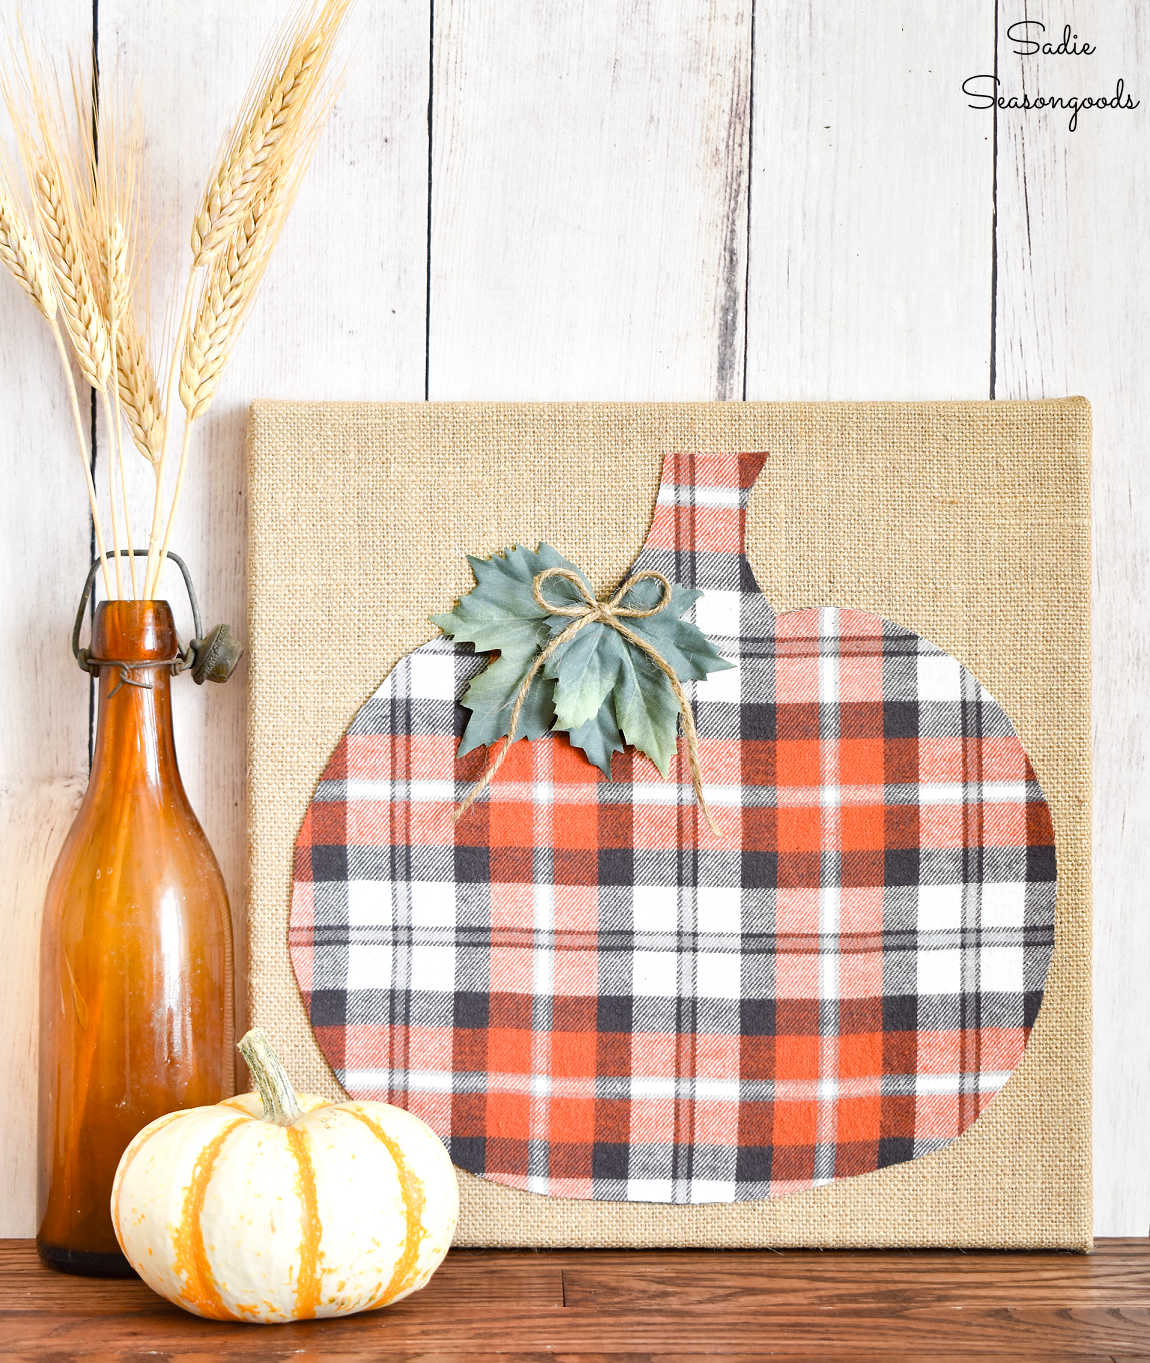 pumpkin decor from crafting with flannel